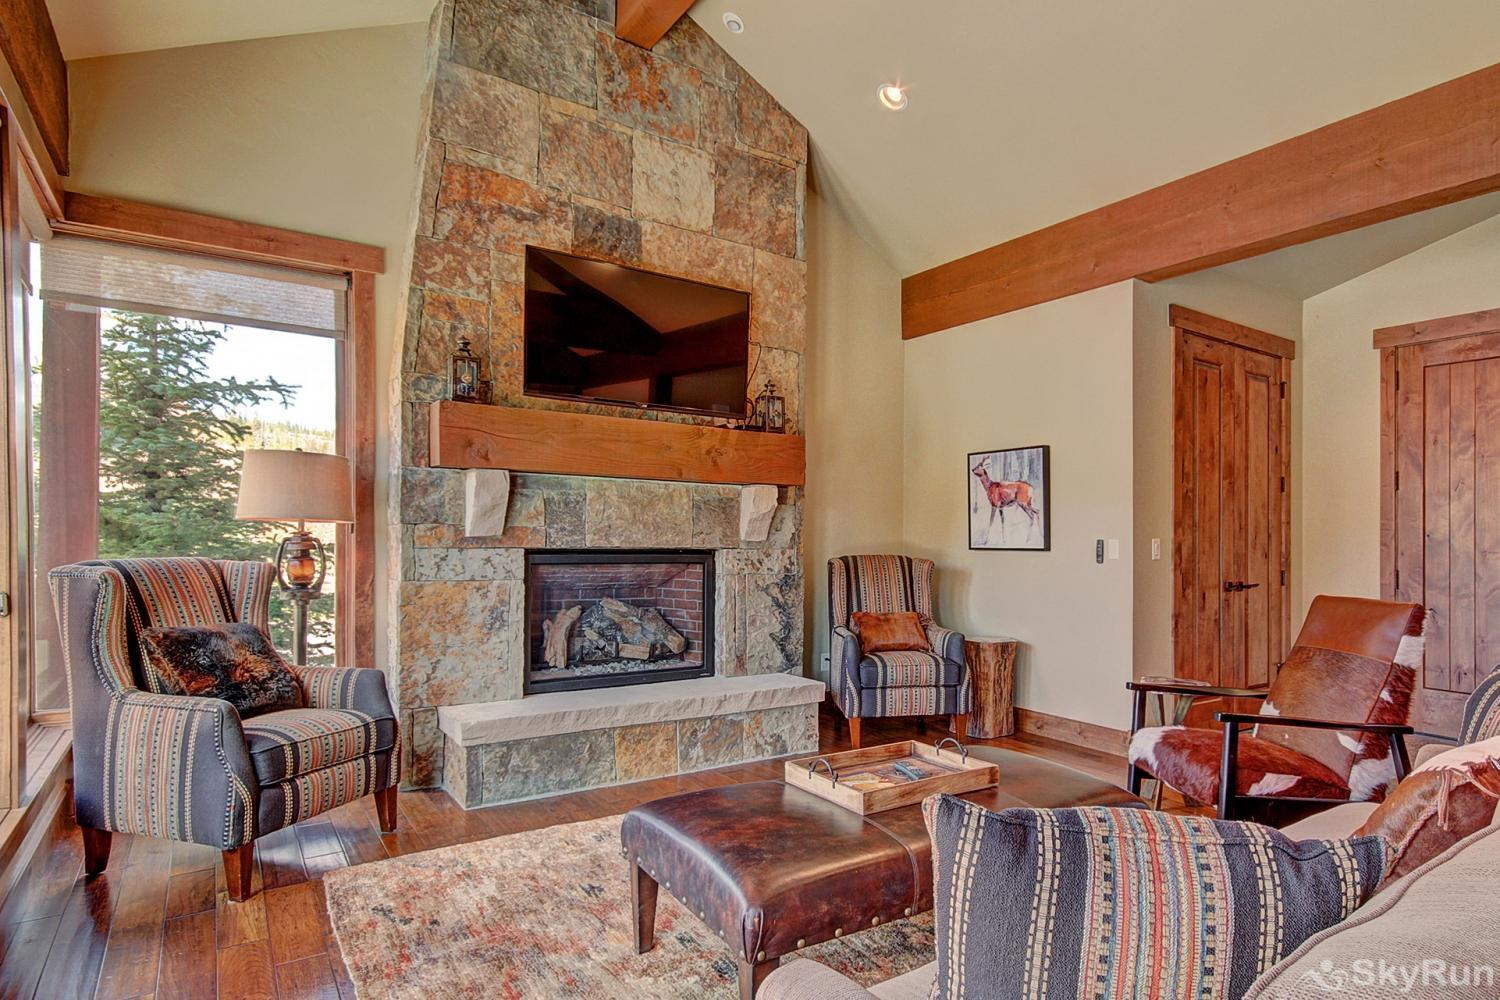 The Shores Lodge Stay cozy warm by the gas fireplace on those cold winter nights